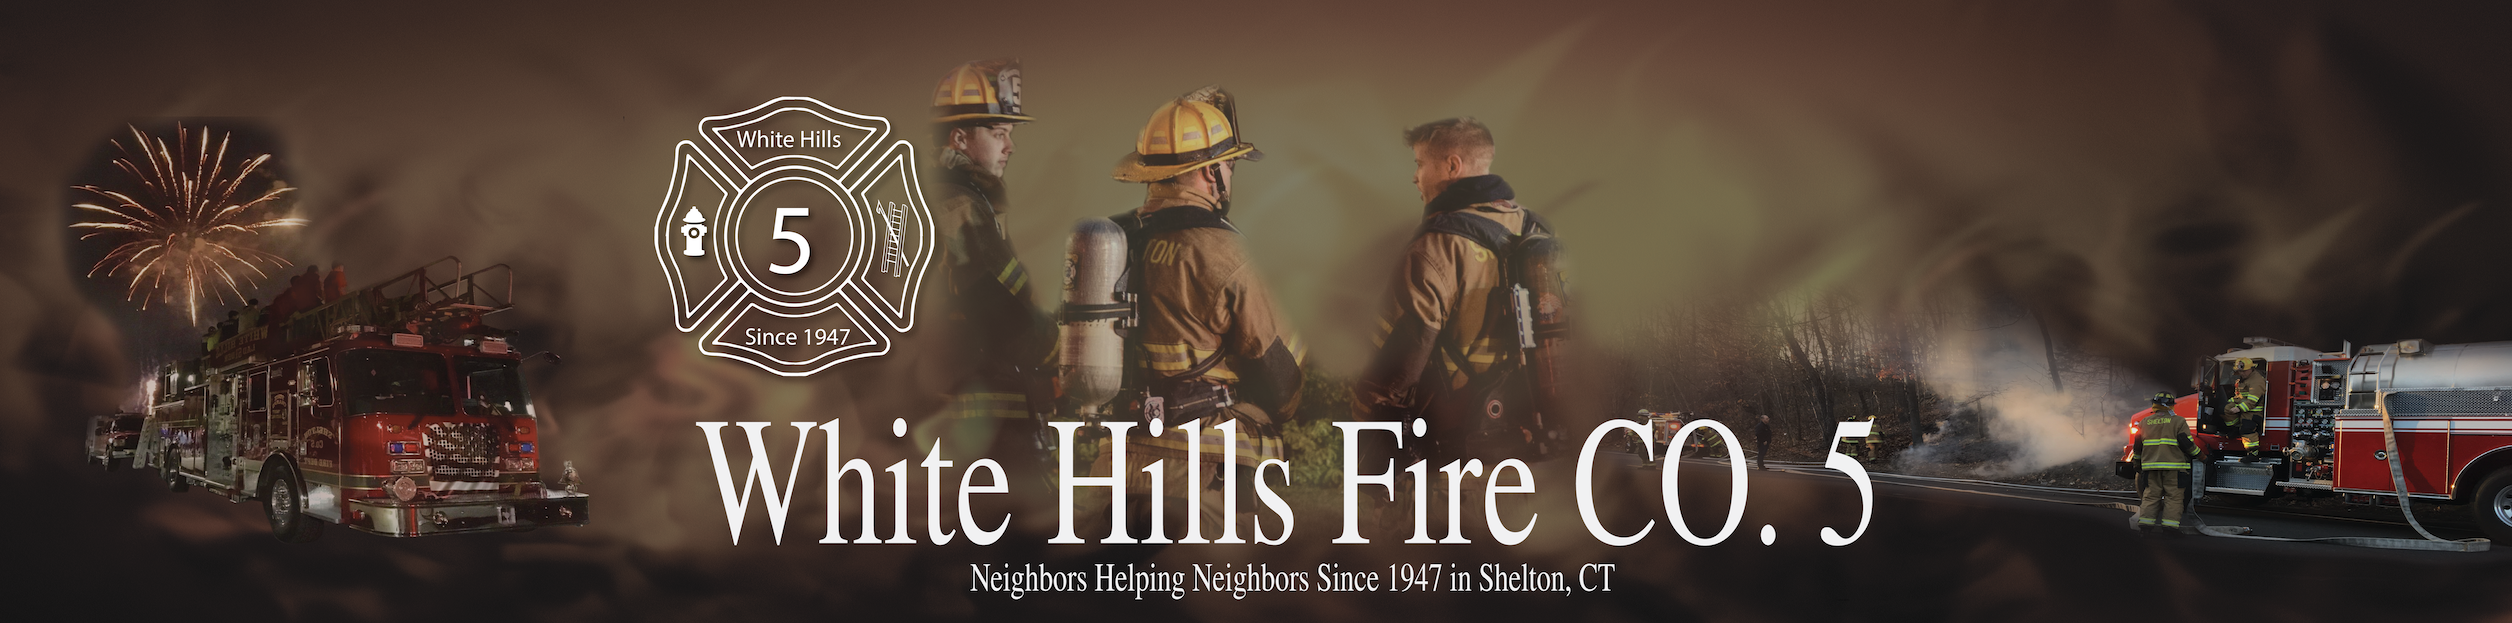 Shelton White Hills Fire Company NO. 5